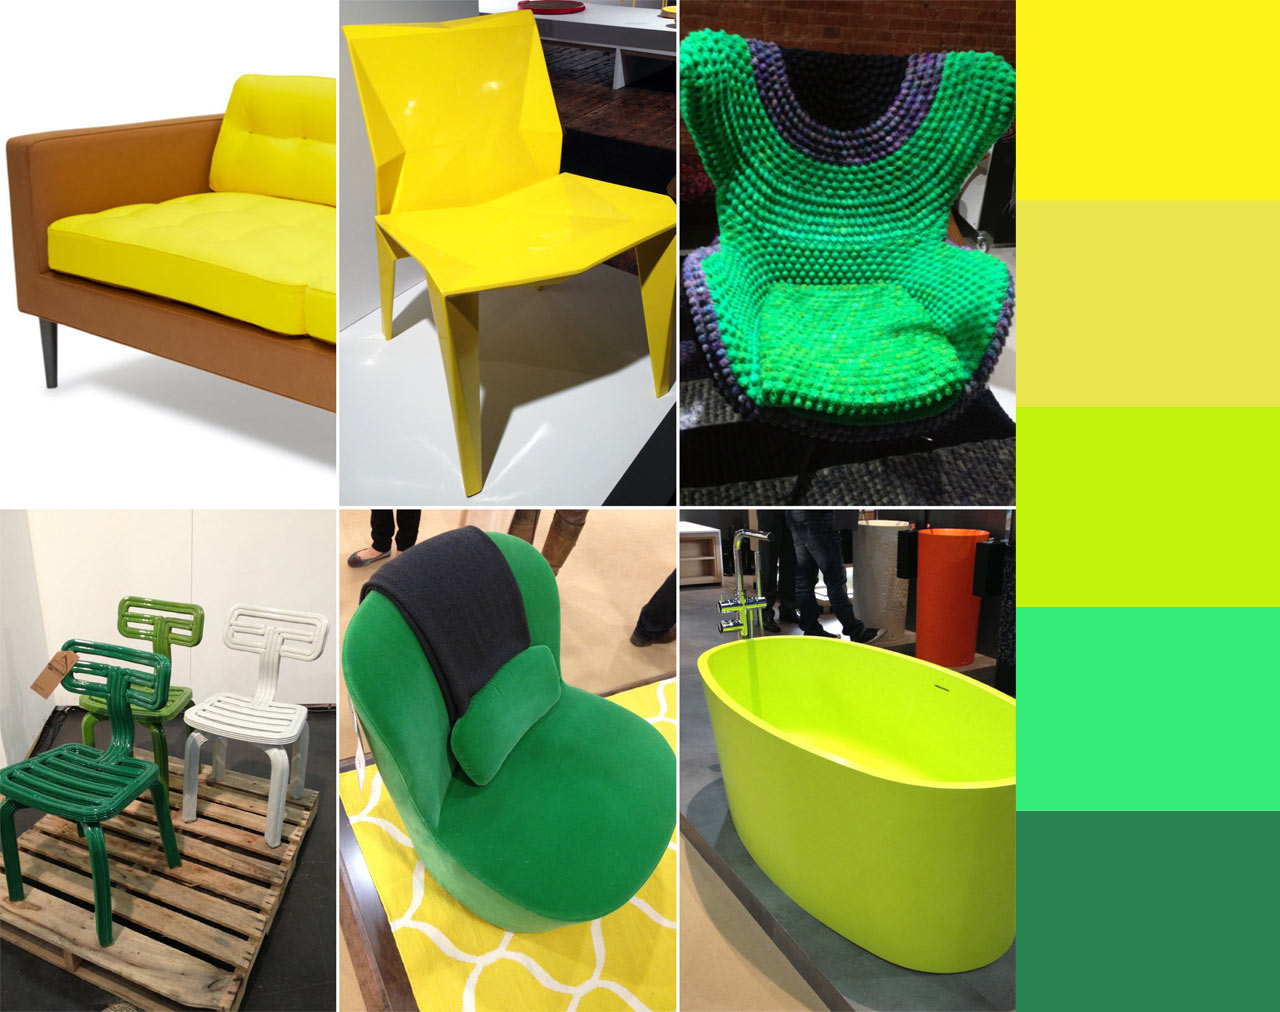 Color Trends From ICFF 2013: Green and Yellow